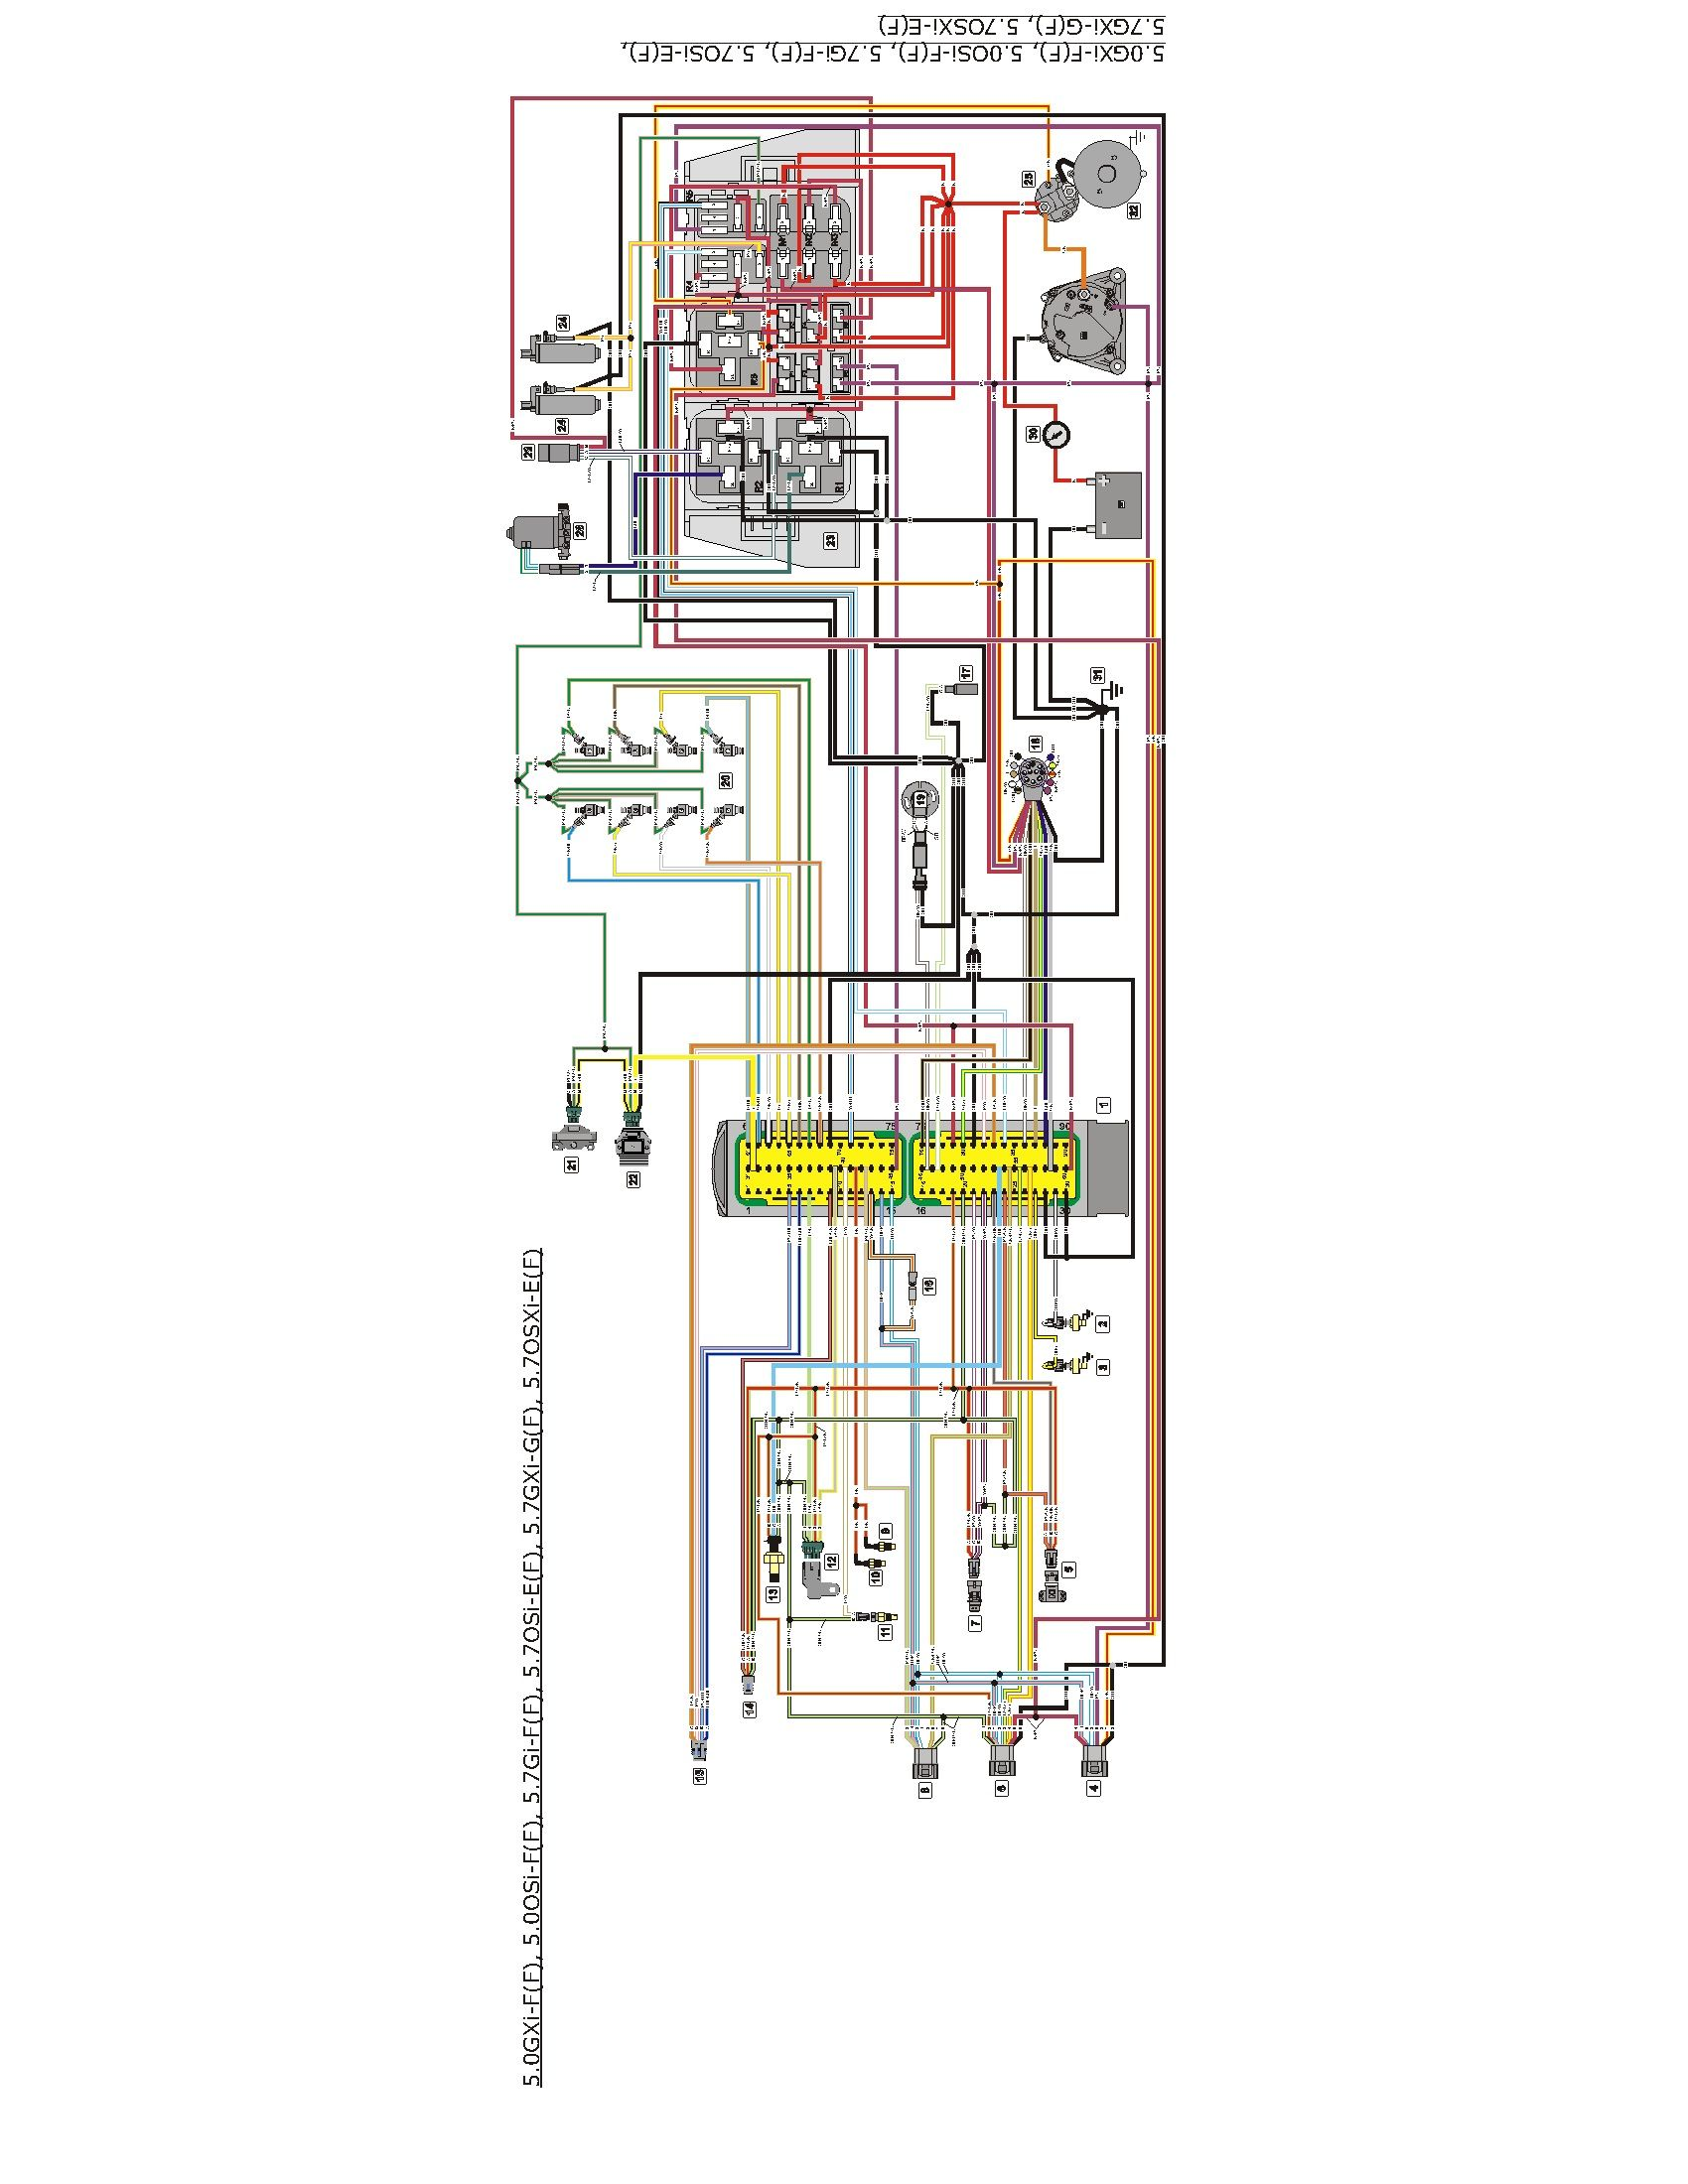 38e0106861e0fe47e508530985b32839 volvo penta 5 7 engine wiring diagram boat pinterest volvo and